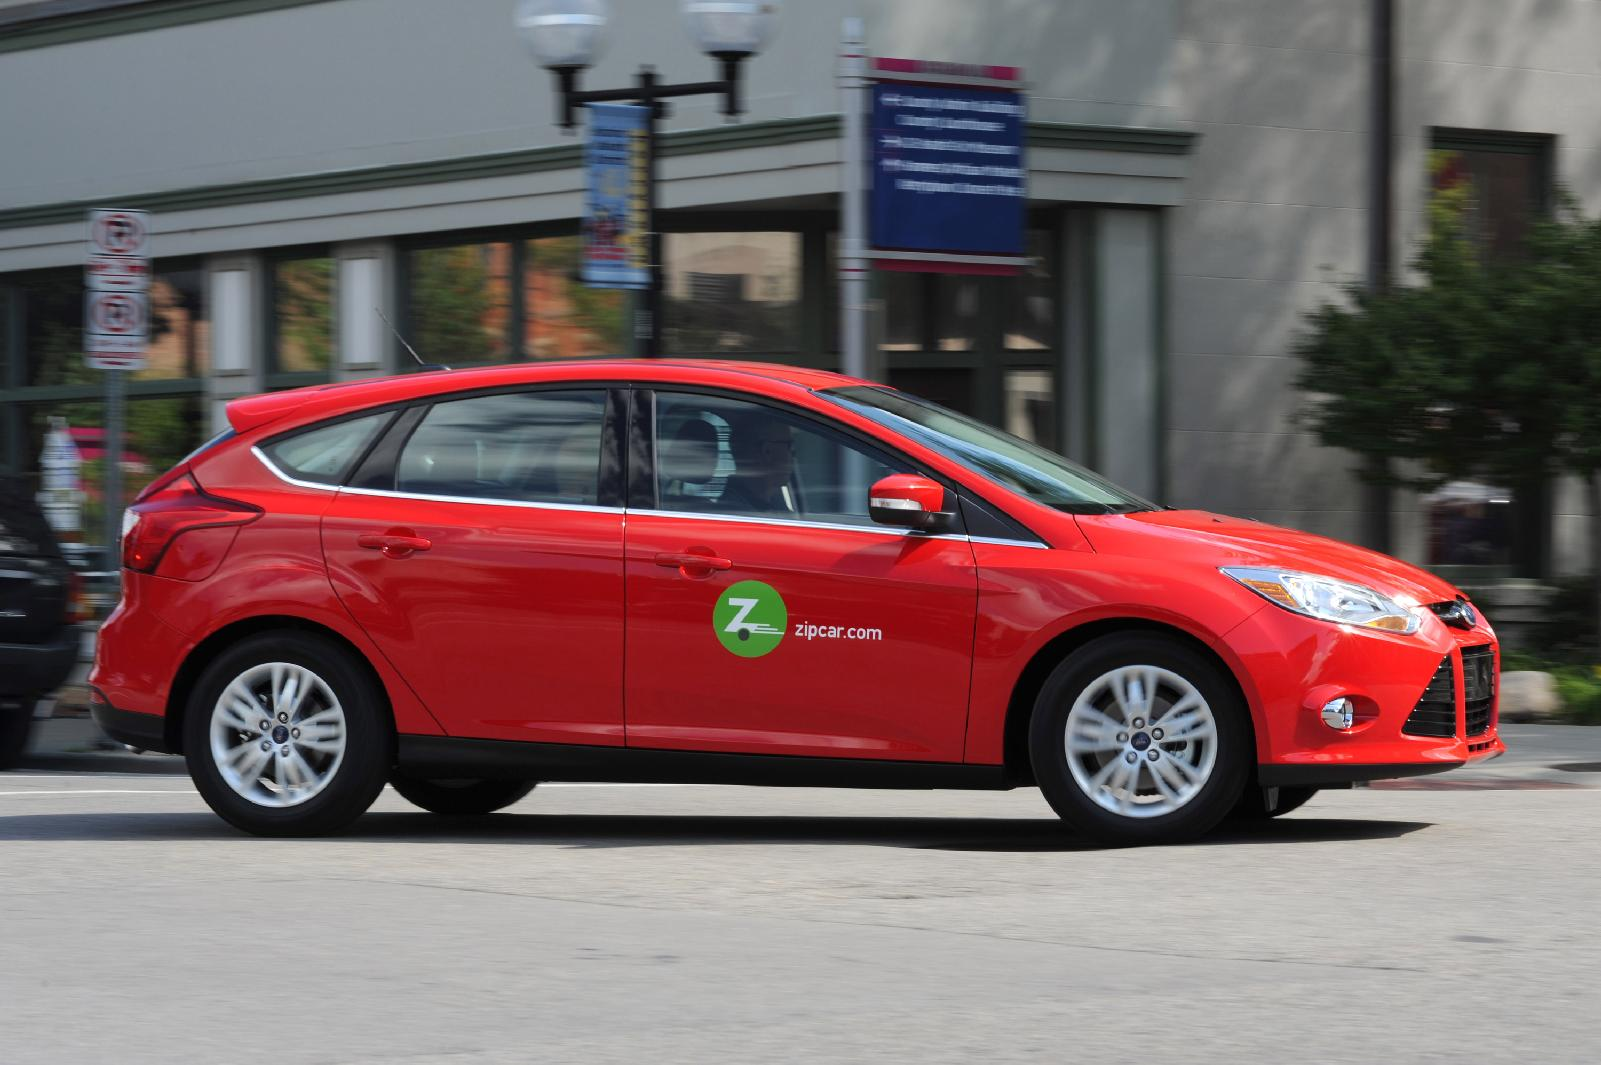 Ford Promotes Its Cars To College Students With Zipcar Deal